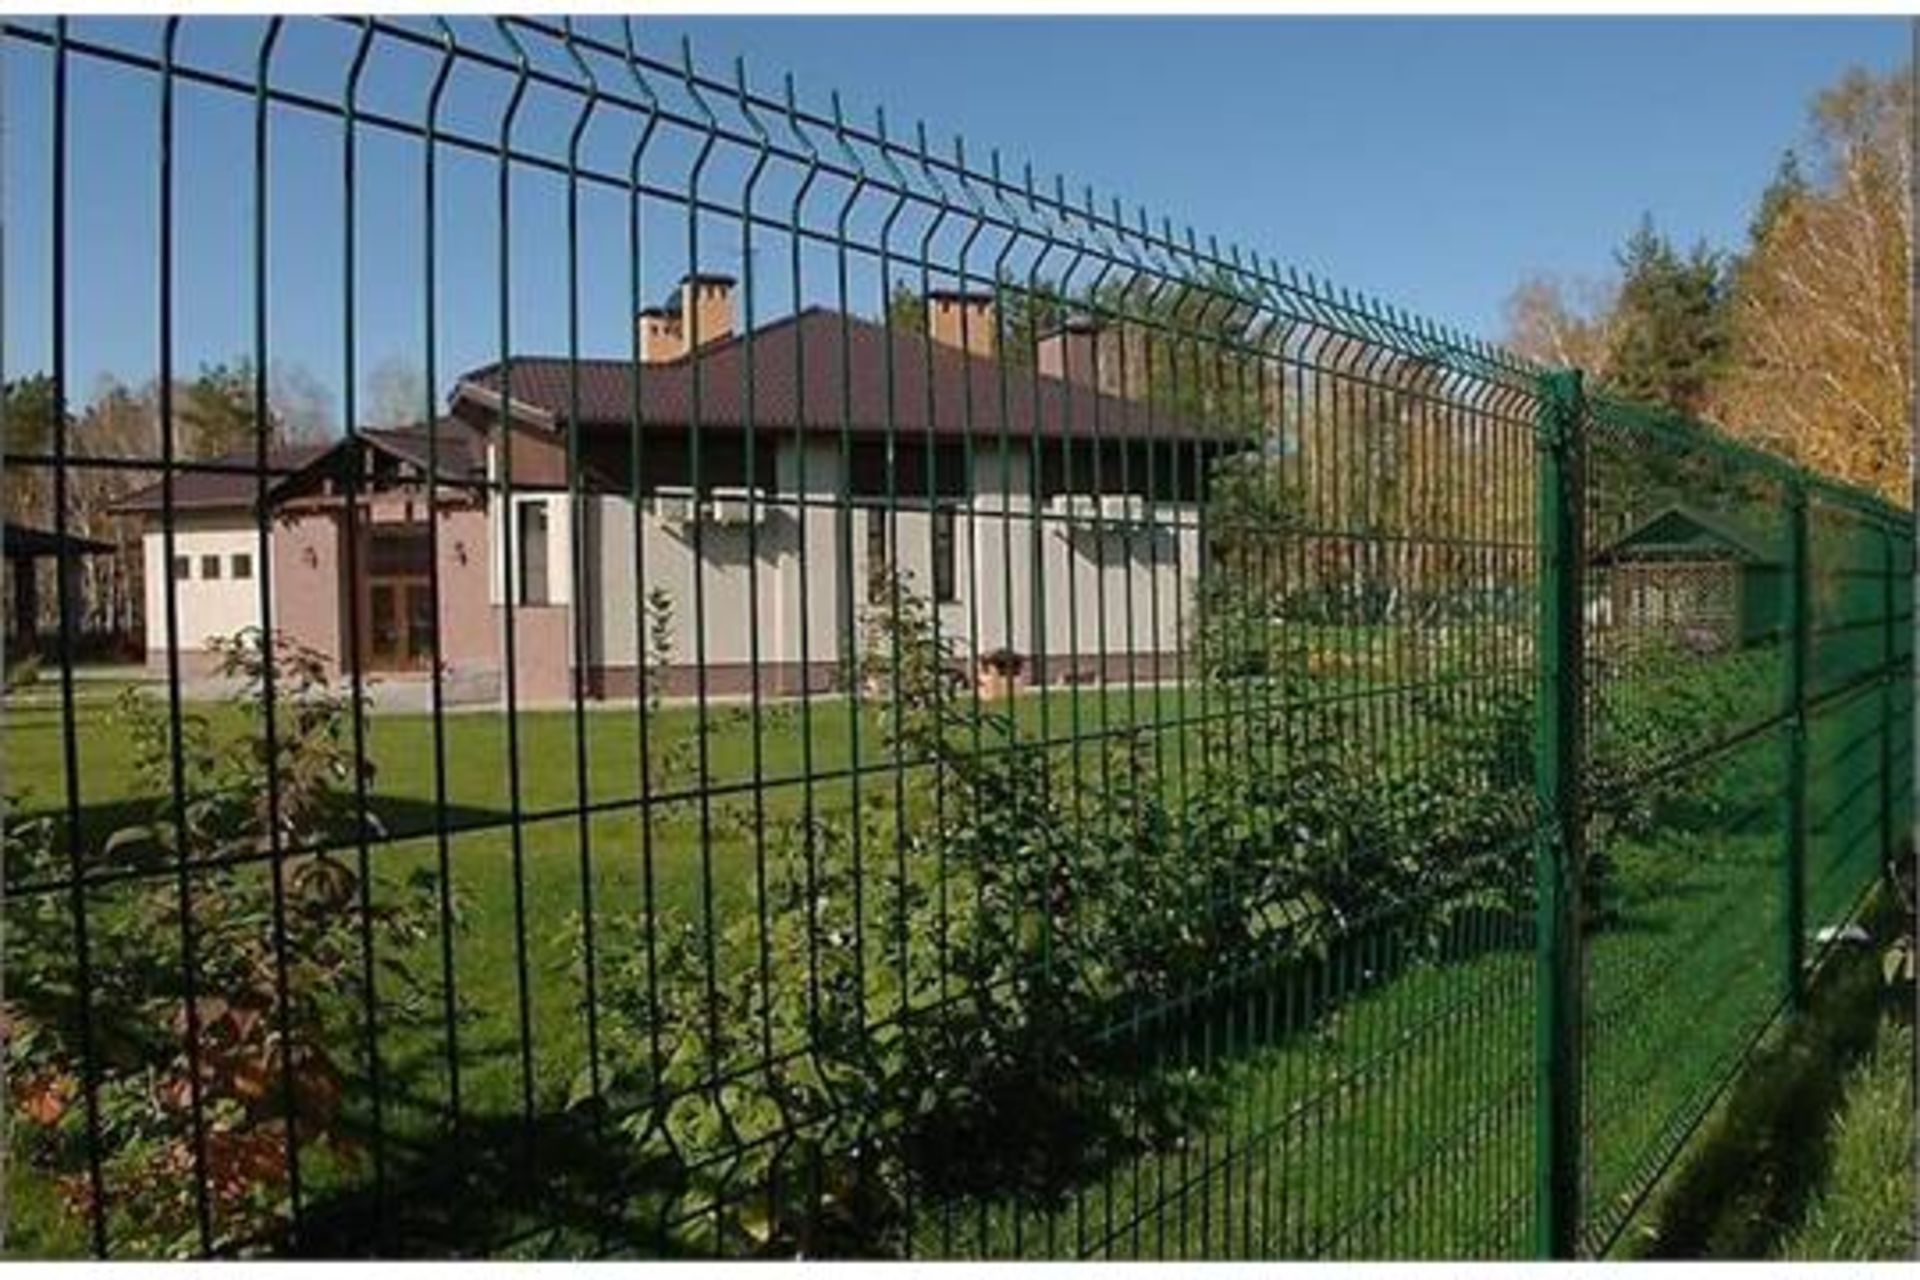 Lot 14 - 50 x Meters in 2.1h x 2.5w sections of New V BEAM Heavy Duty Security Fencing